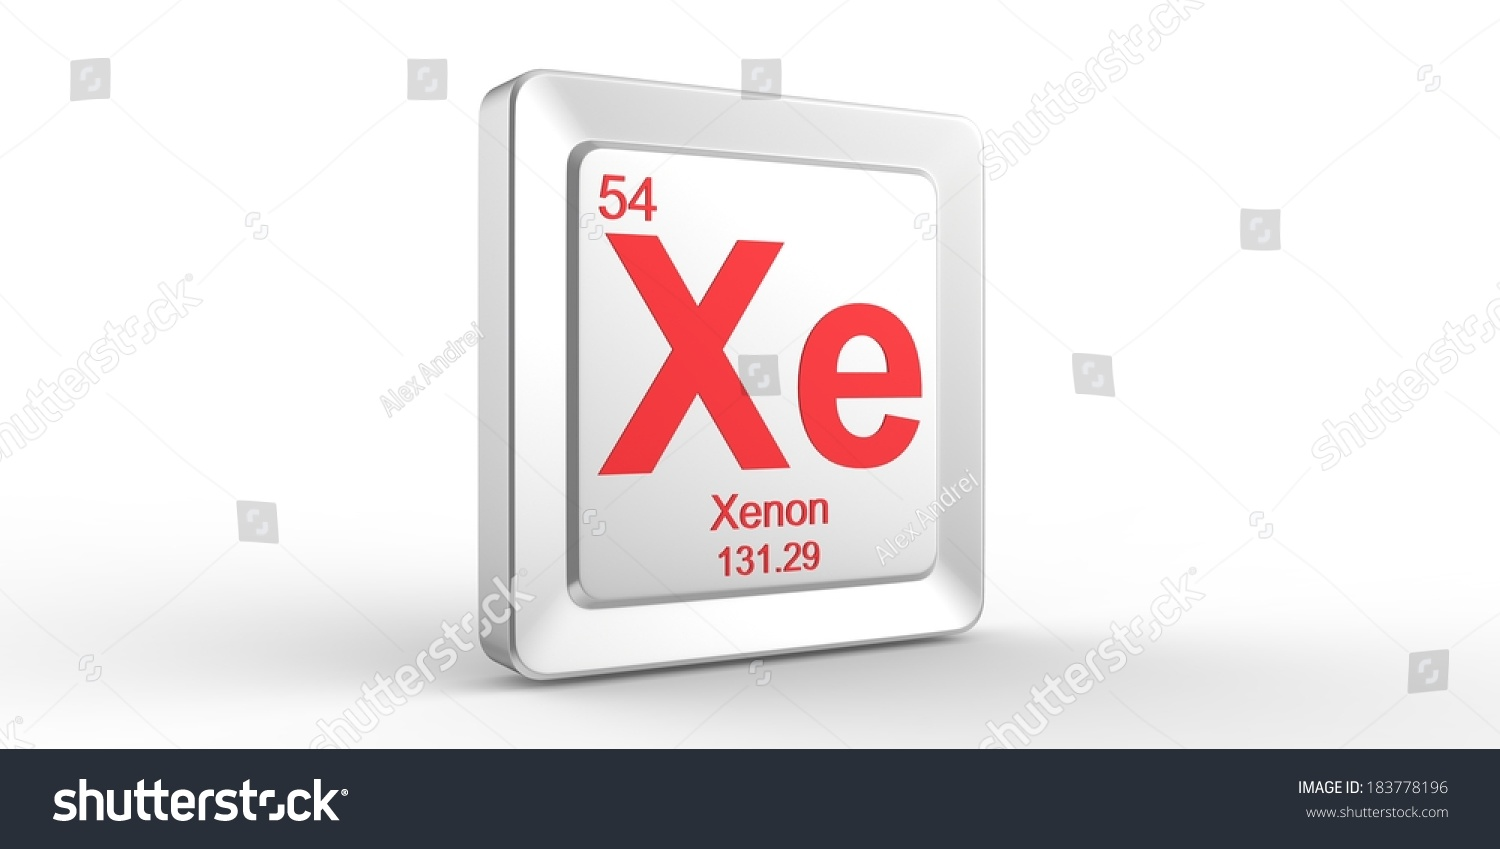 Xe symbol 54 material xenon chemical stock illustration 183778196 xe symbol 54 material for xenon chemical element of the periodic table gamestrikefo Choice Image